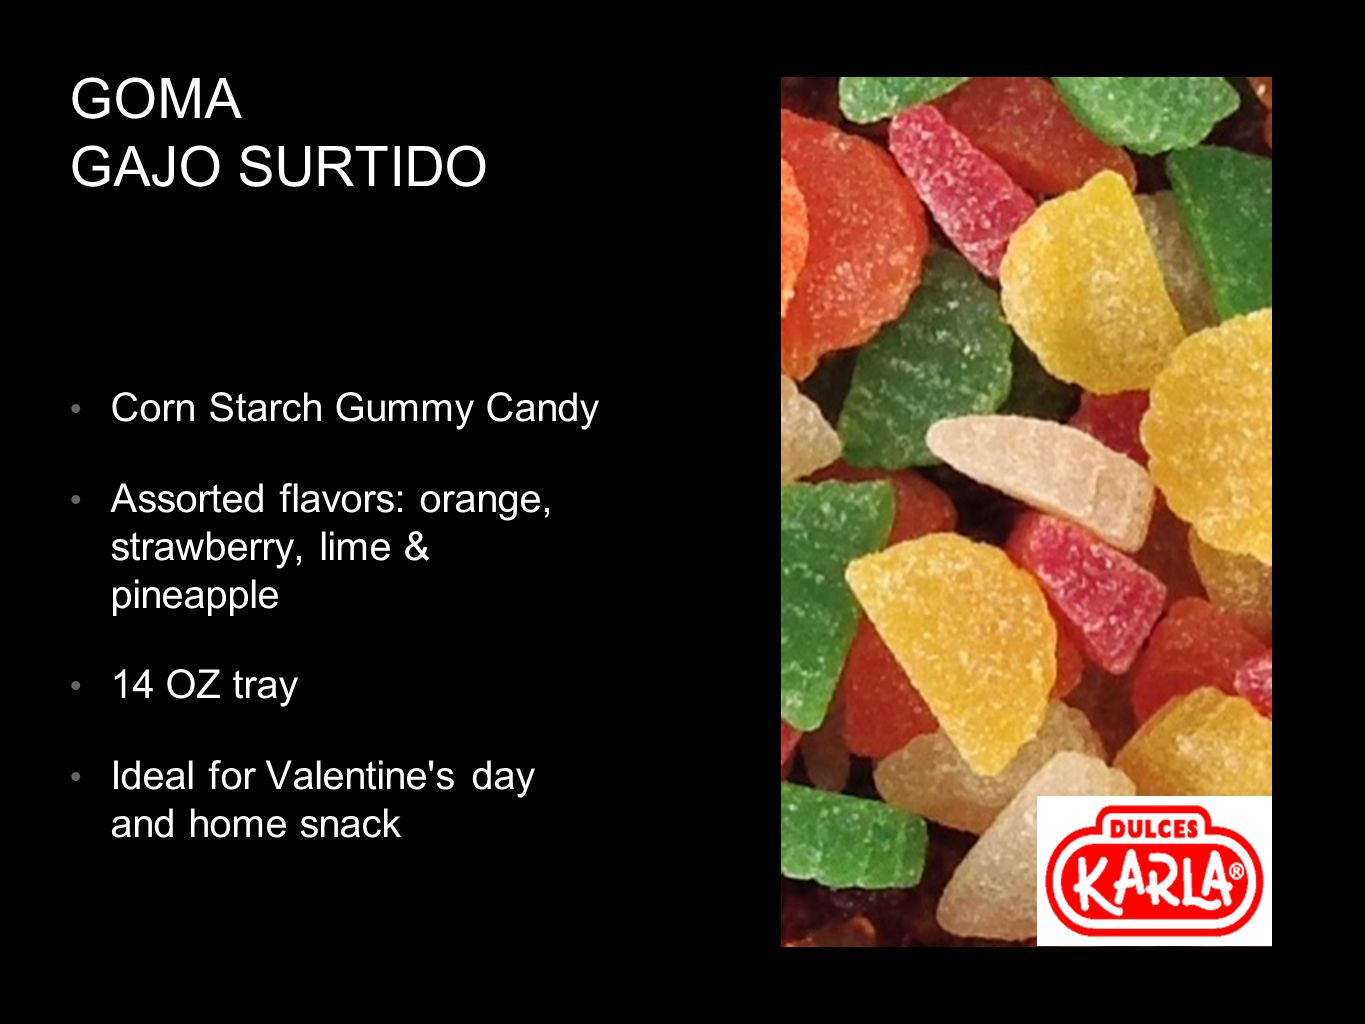 GOMA GAJO SURTIDO Corn Starch Gummy Candy Assorted flavors: orange, strawberry, lime & pineapple 14 OZ tray Ideal for Valentine s day and home snack